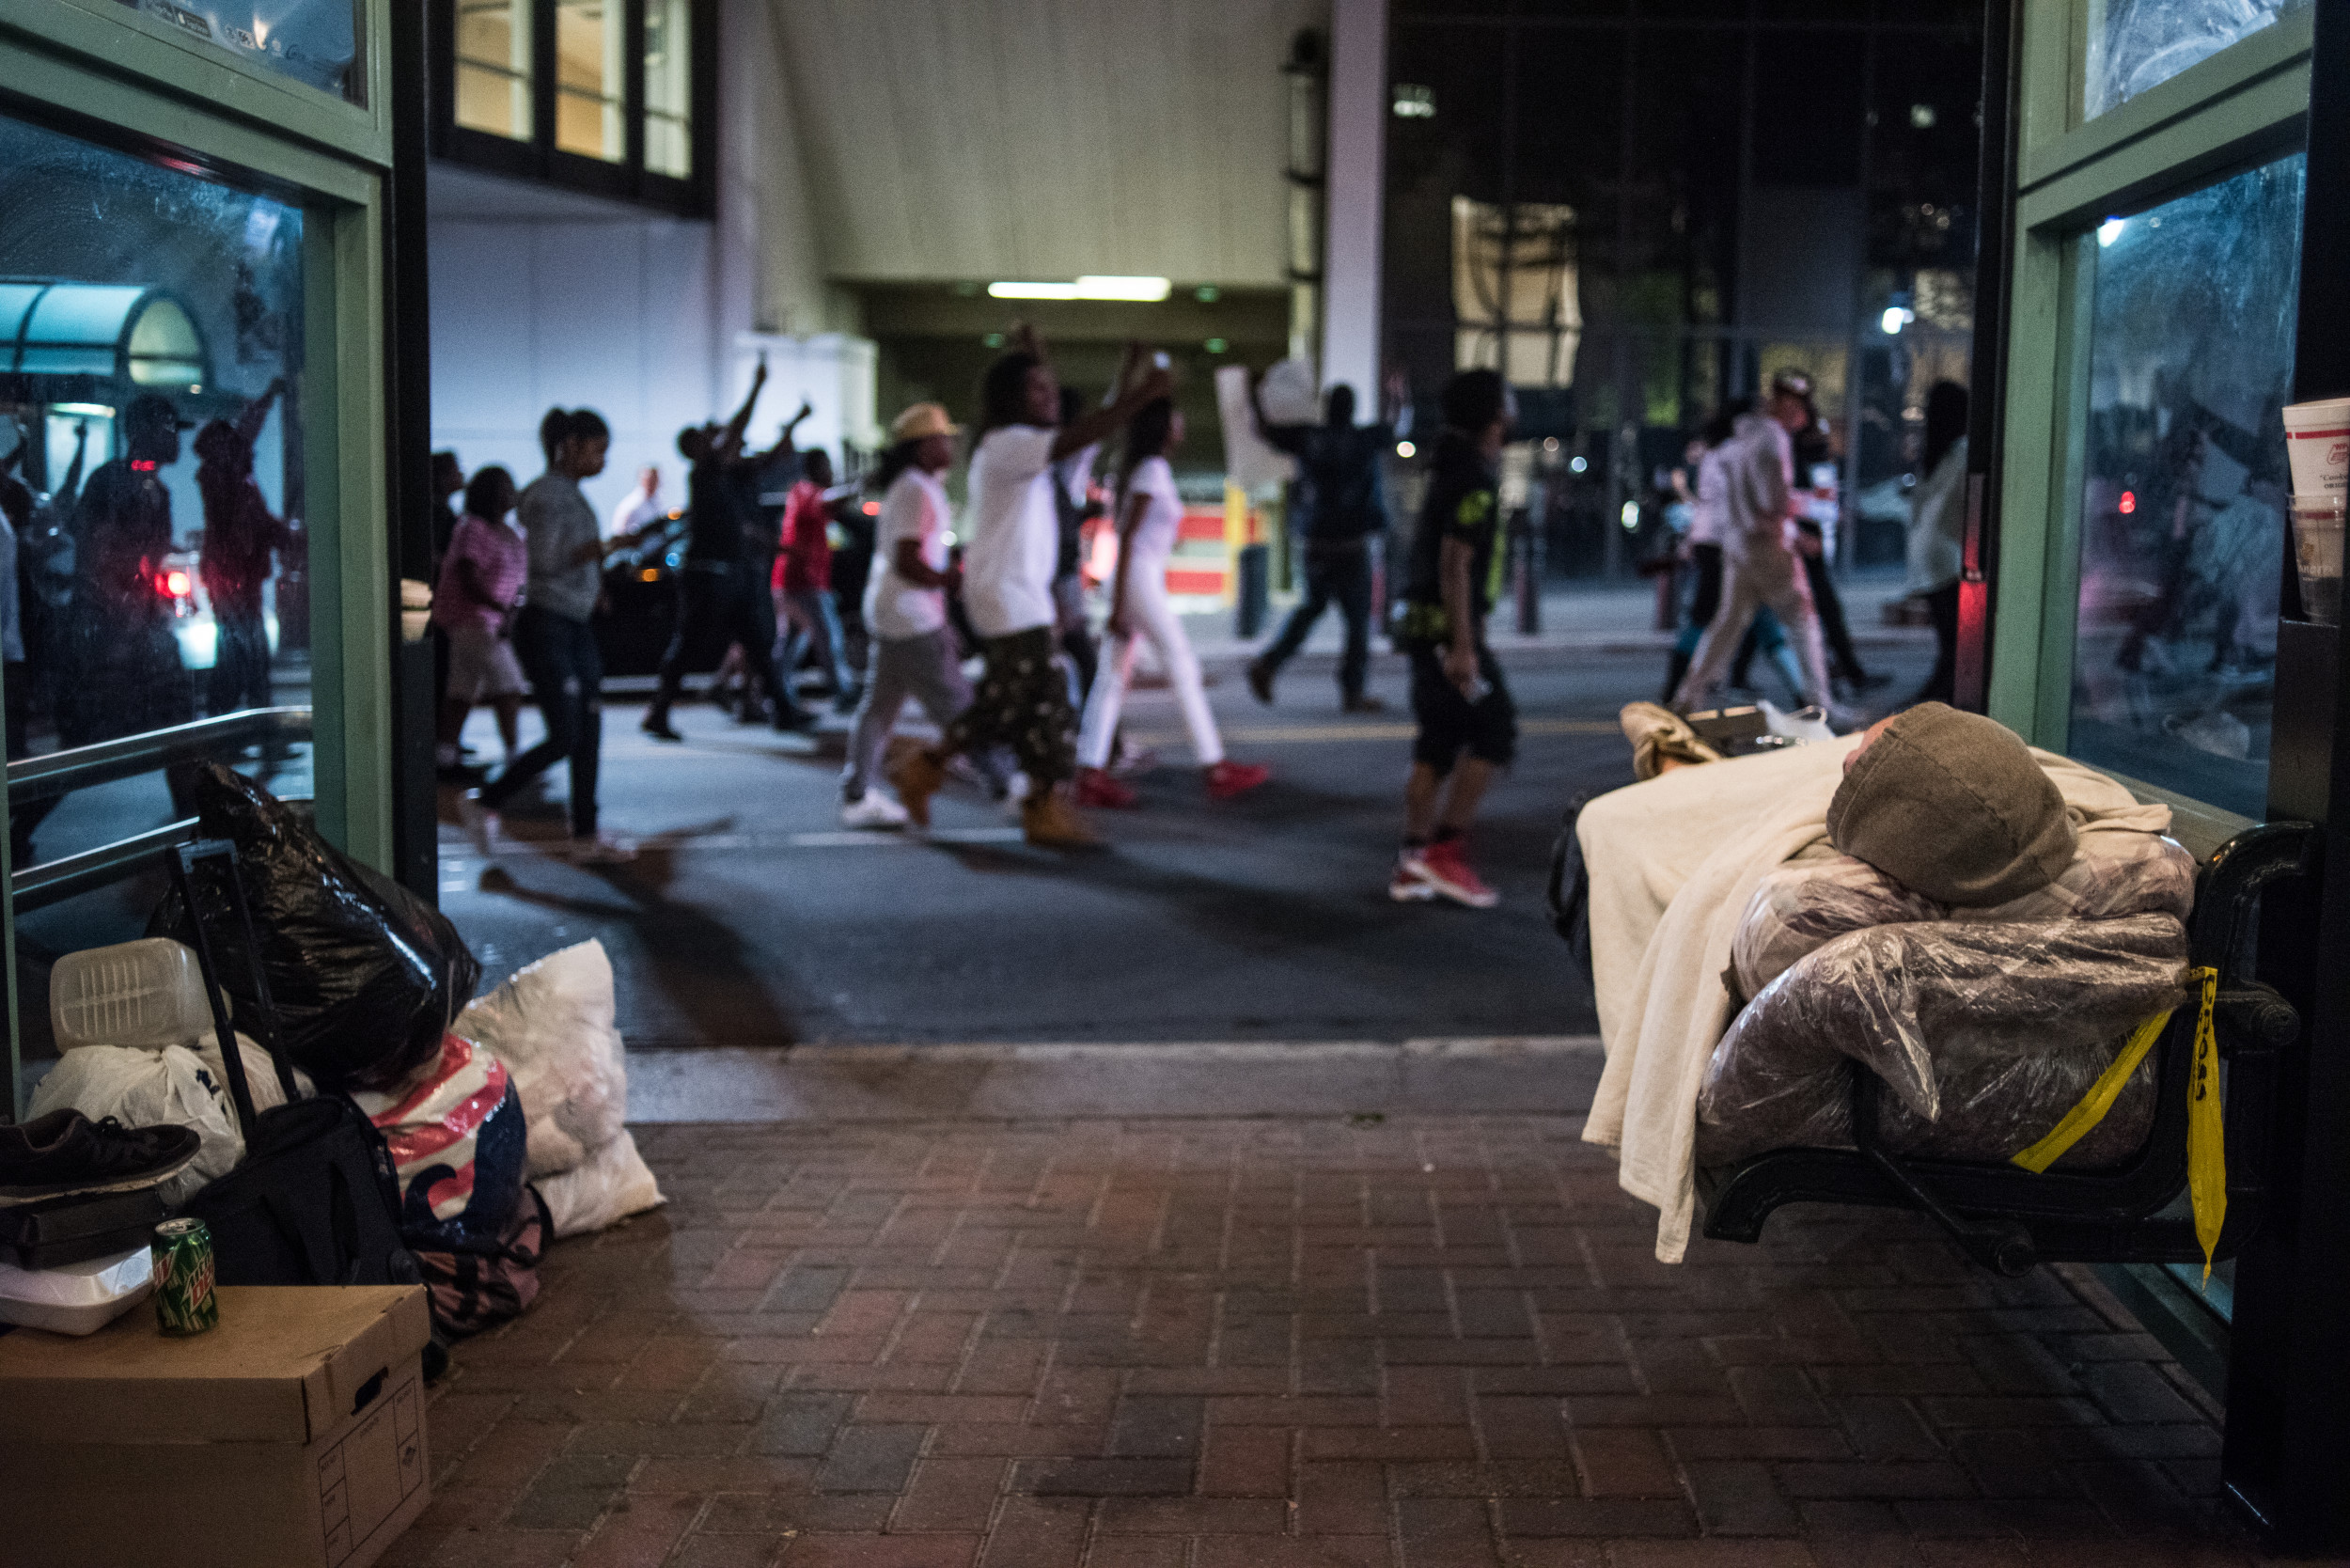 City Councilman Suggests Arrests for Those Who Give Money, Food to Homeless